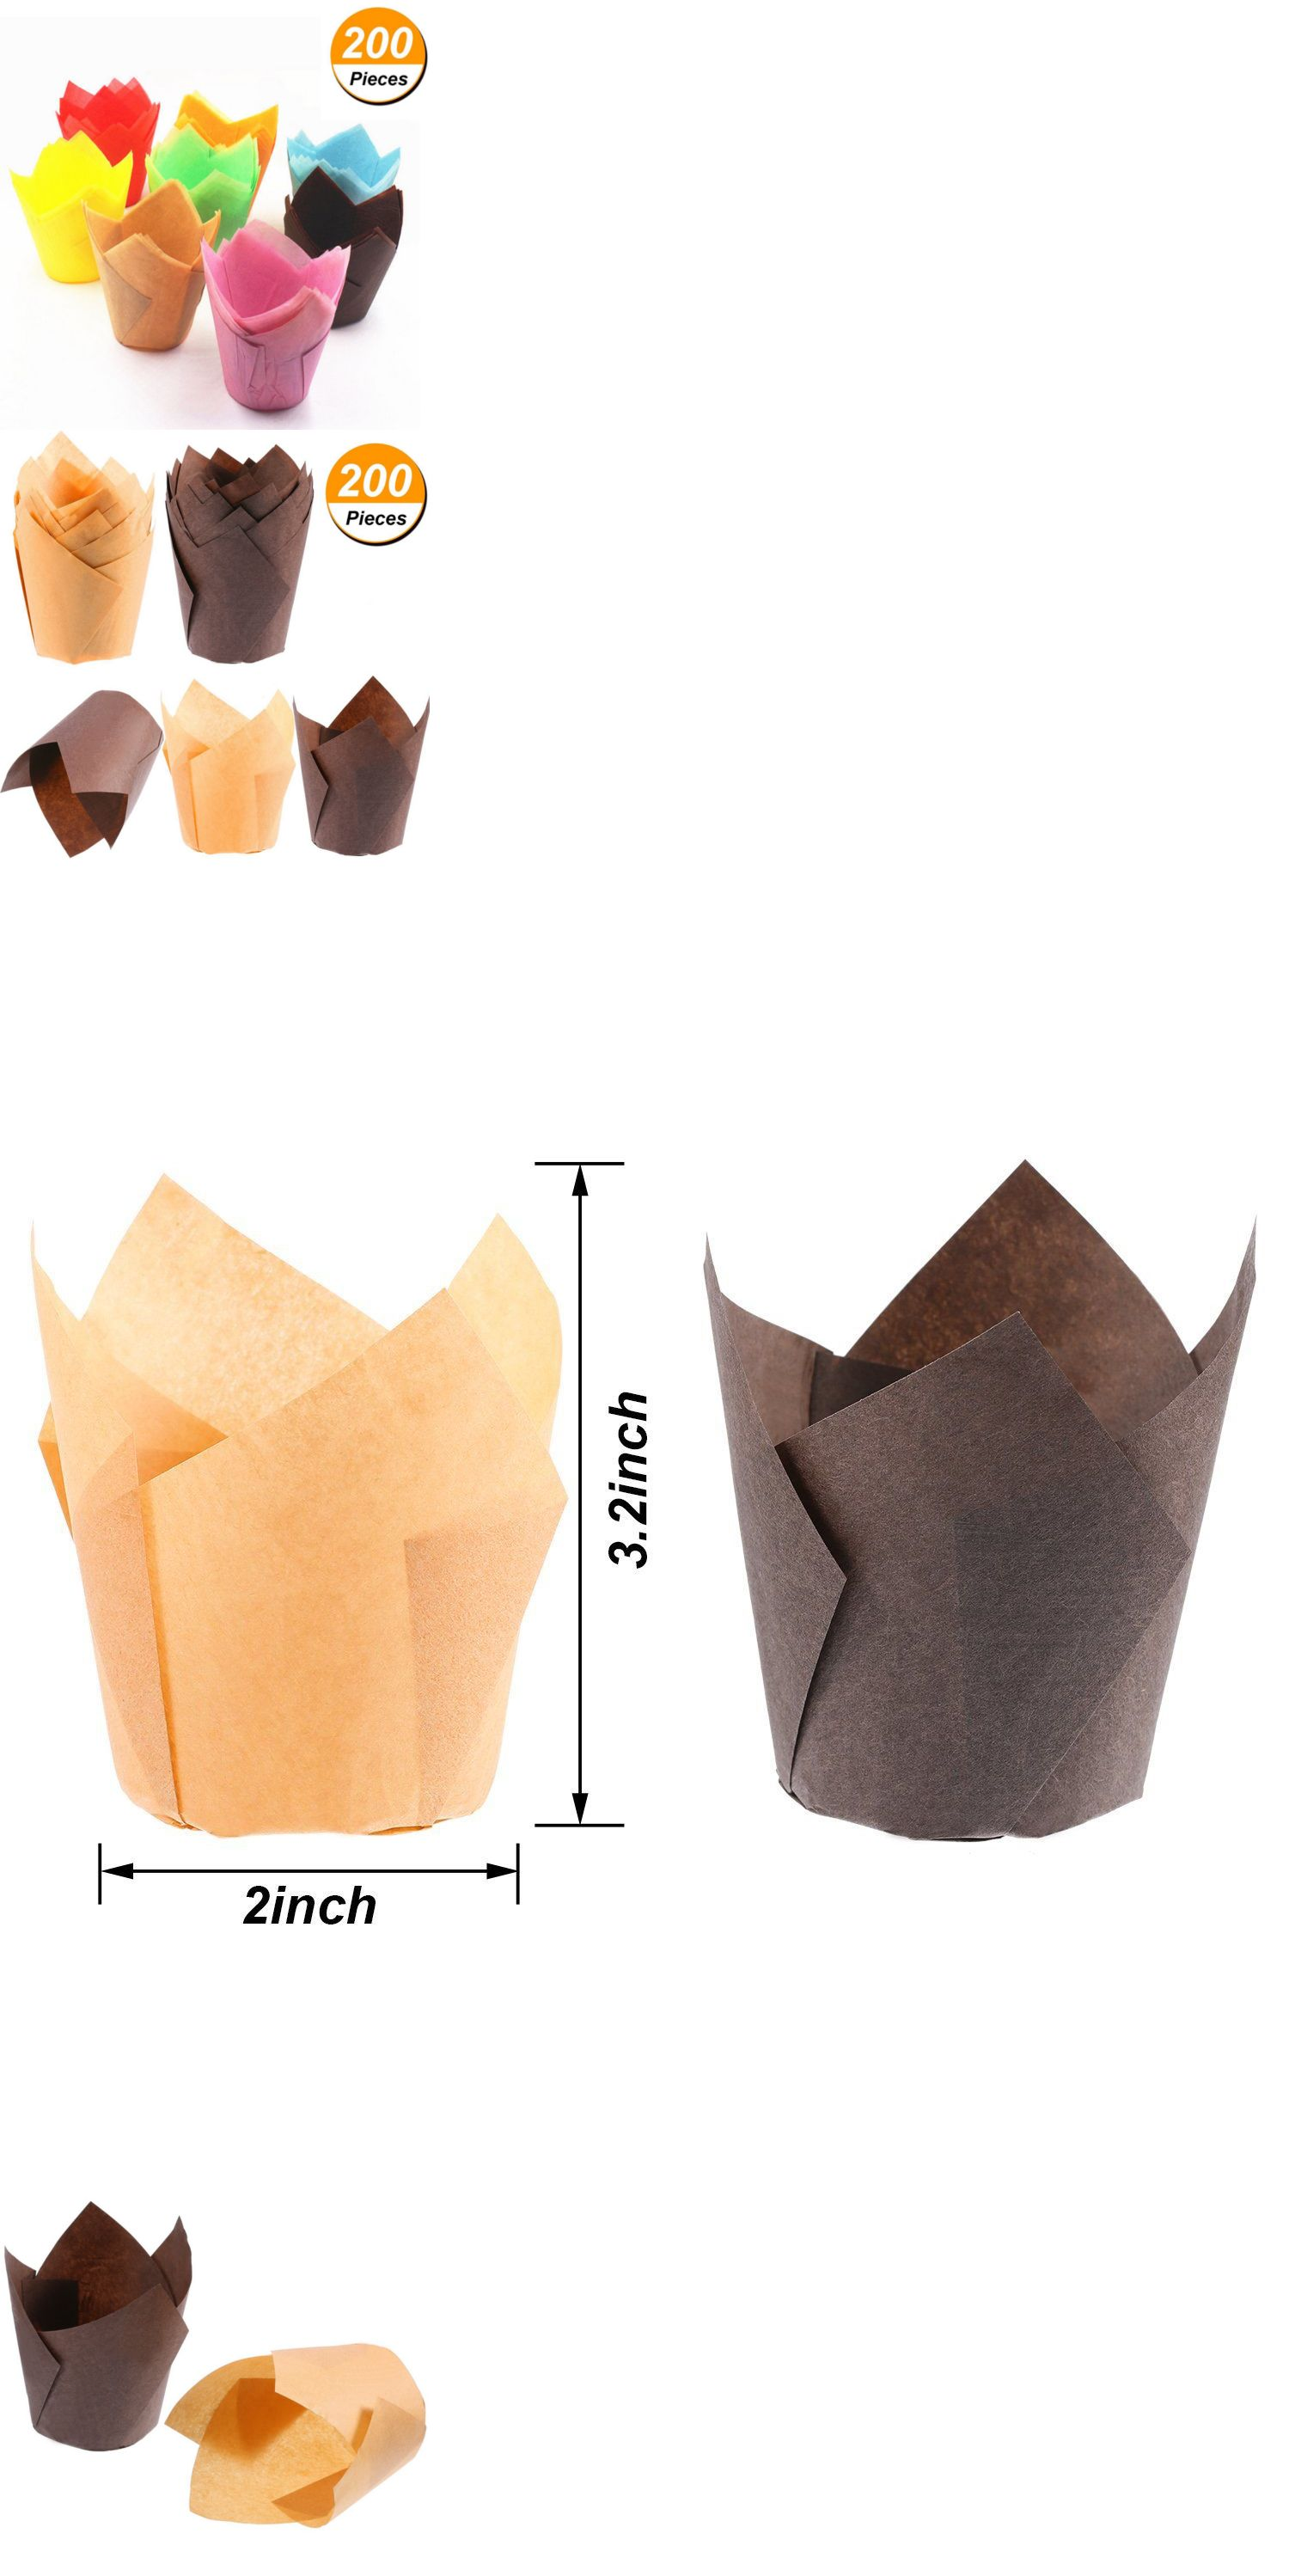 Baking Cups And Liners 177012 200pcs Tulip Baking Cups Liner Paper Cupcake Wrapper Liner Muffin Case Paper Cup Buy It Now Only With Images Paper Cupcake Cupcake Wraps